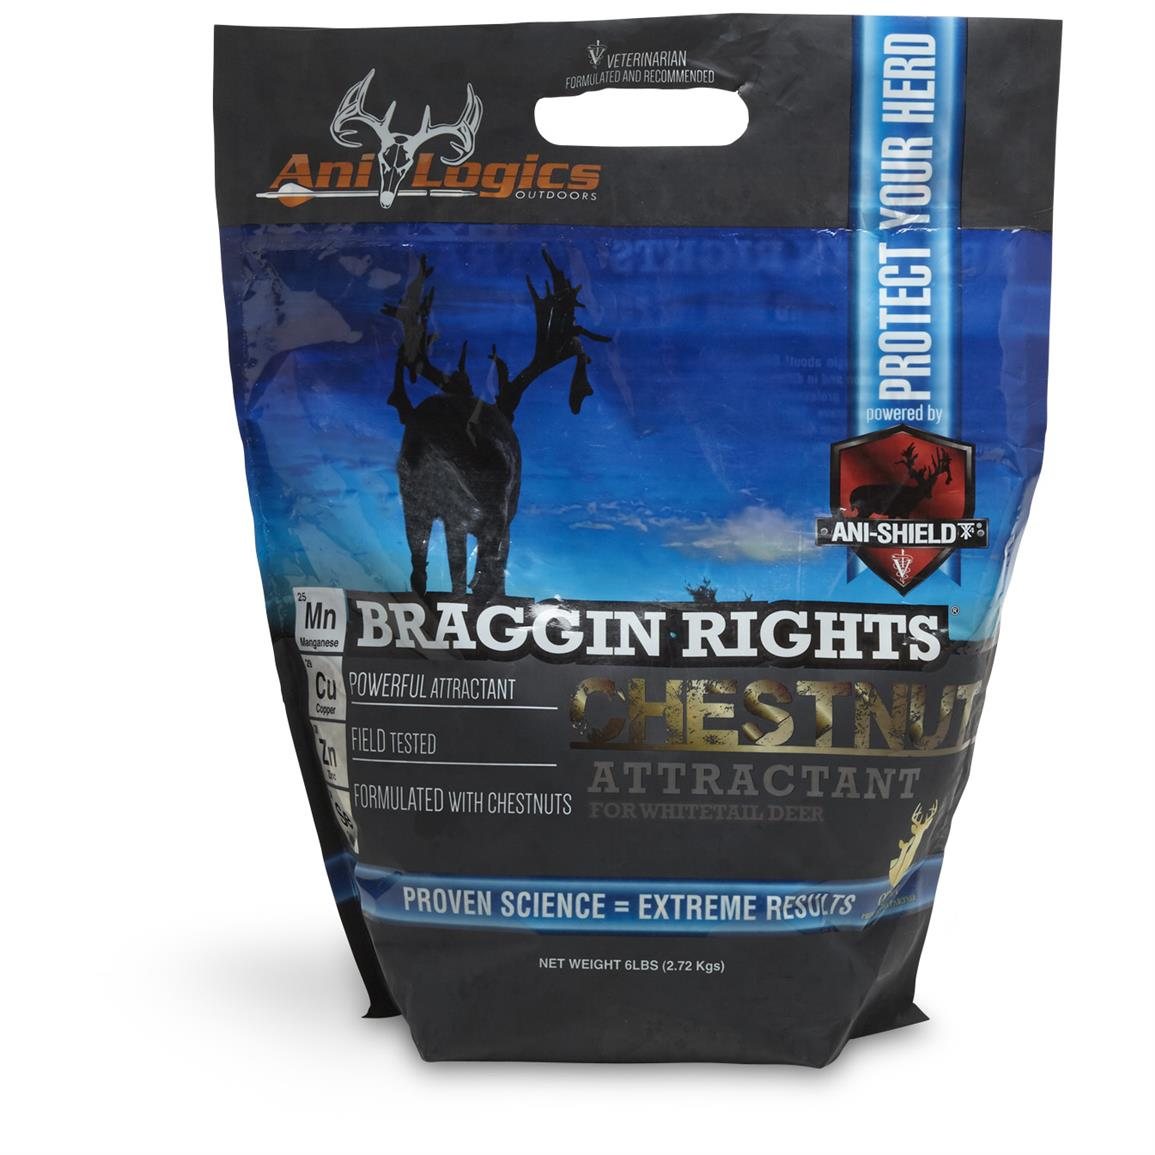 Ani-Logics Braggin Rights Chestnut Attractant, 6 lbs.